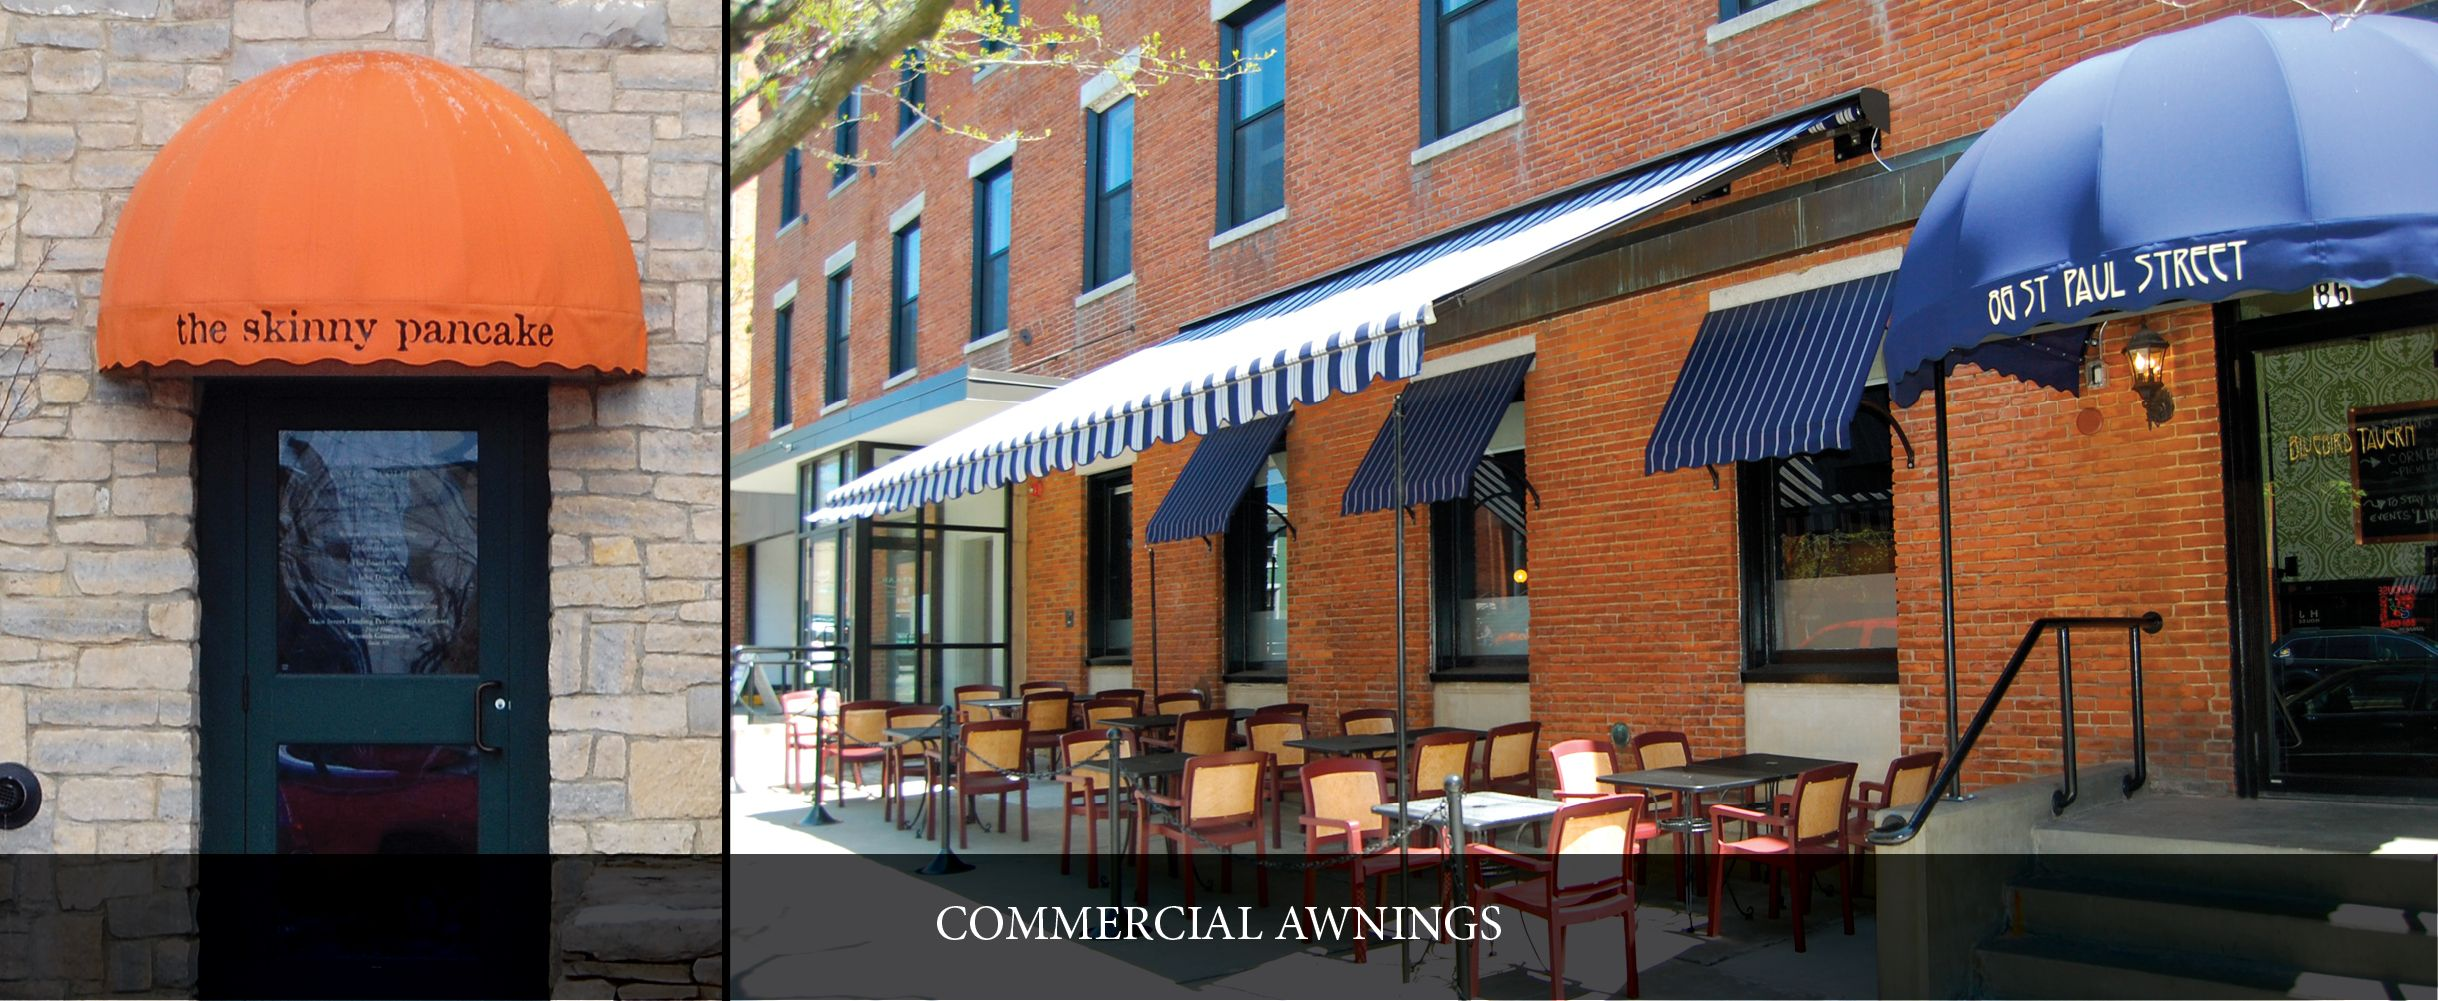 We May Be Biased Based On Their Awnings But We Think Skinny Pancake And Bluebird Tavern In Burlington Have Especially At Shade Umbrellas Outdoor Dining Awning